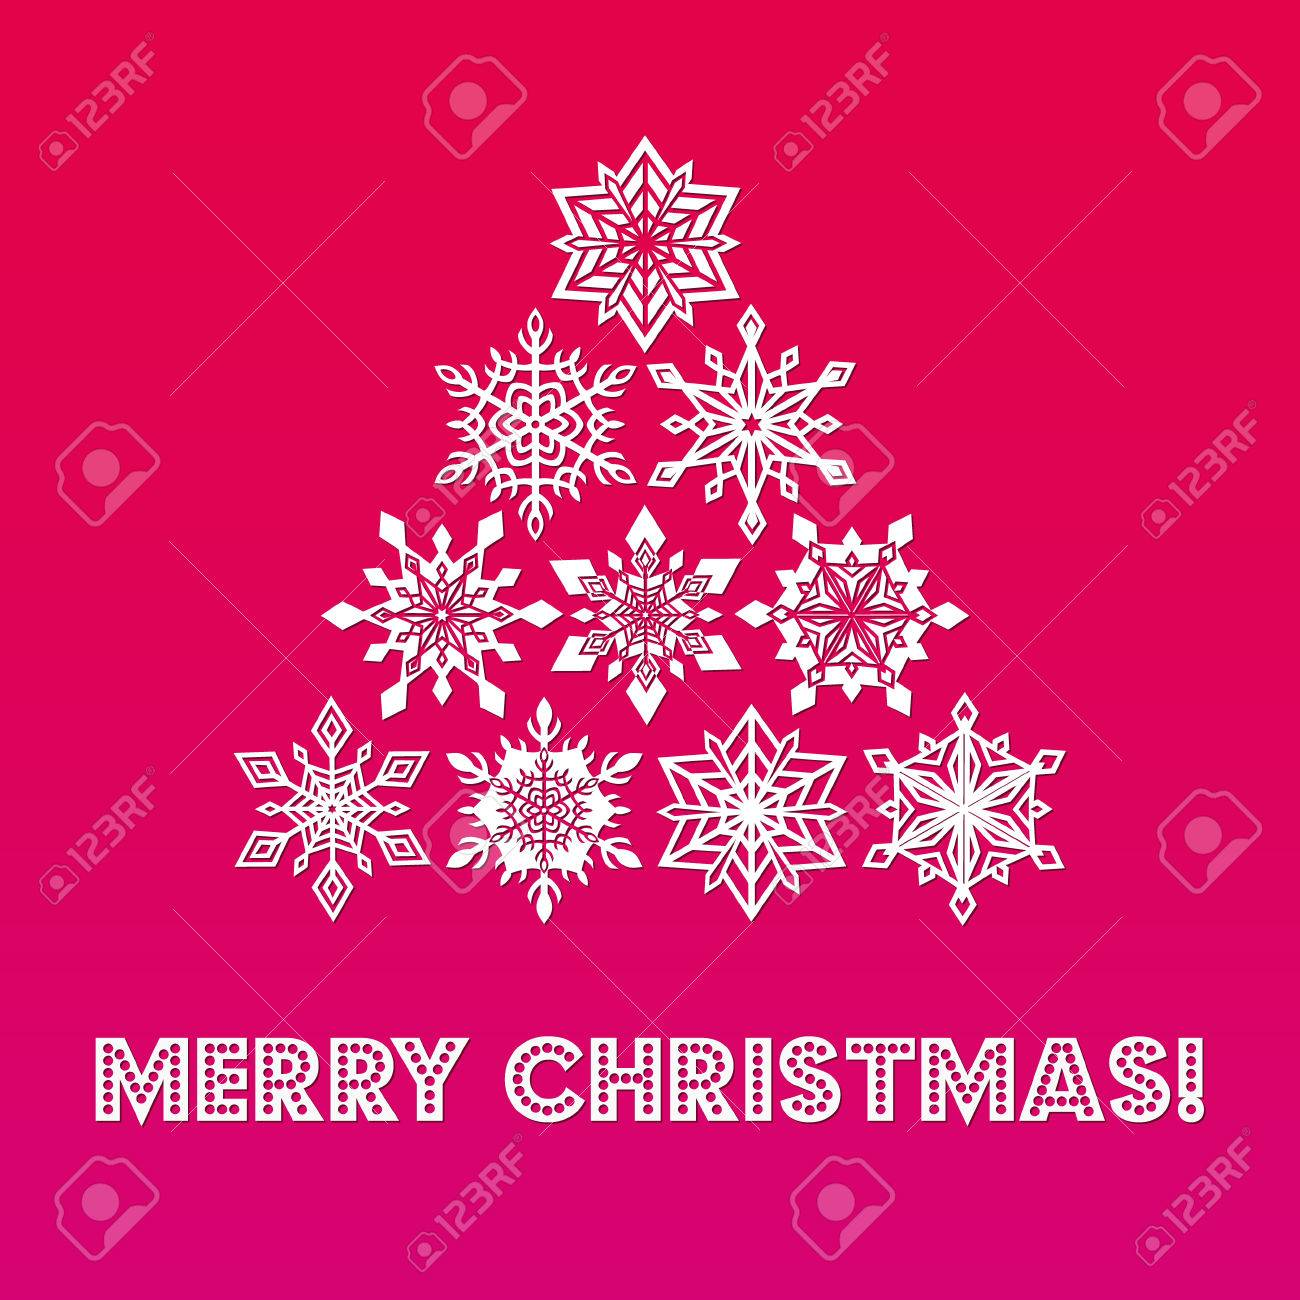 Merry christmas greeting card with words and abstract tree from merry christmas greeting card with words and abstract tree from white lace snowflakes on gradient red m4hsunfo